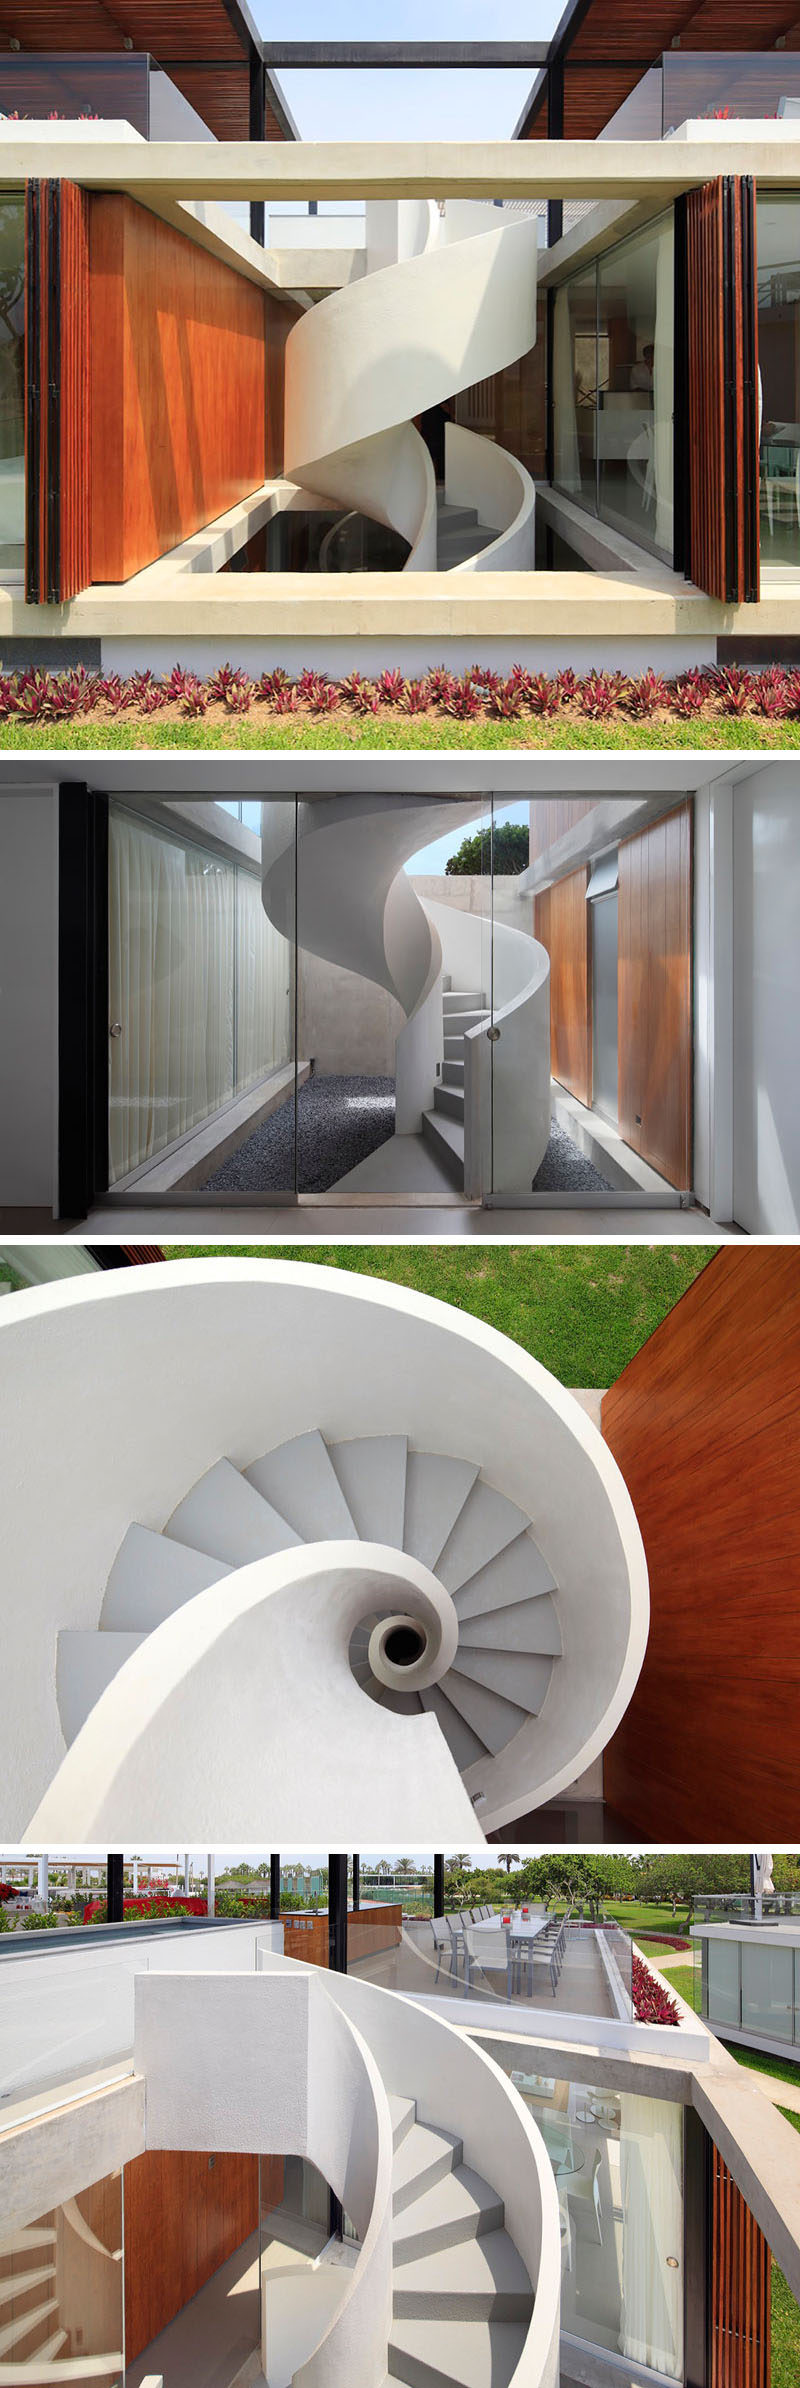 The white and grey outdoor spiral staircase of this modern house climbs all the way from the bottom level of the home up to the rooftop deck. #SpiralStairs #SpiralStaircase #ModernSpiralStairs